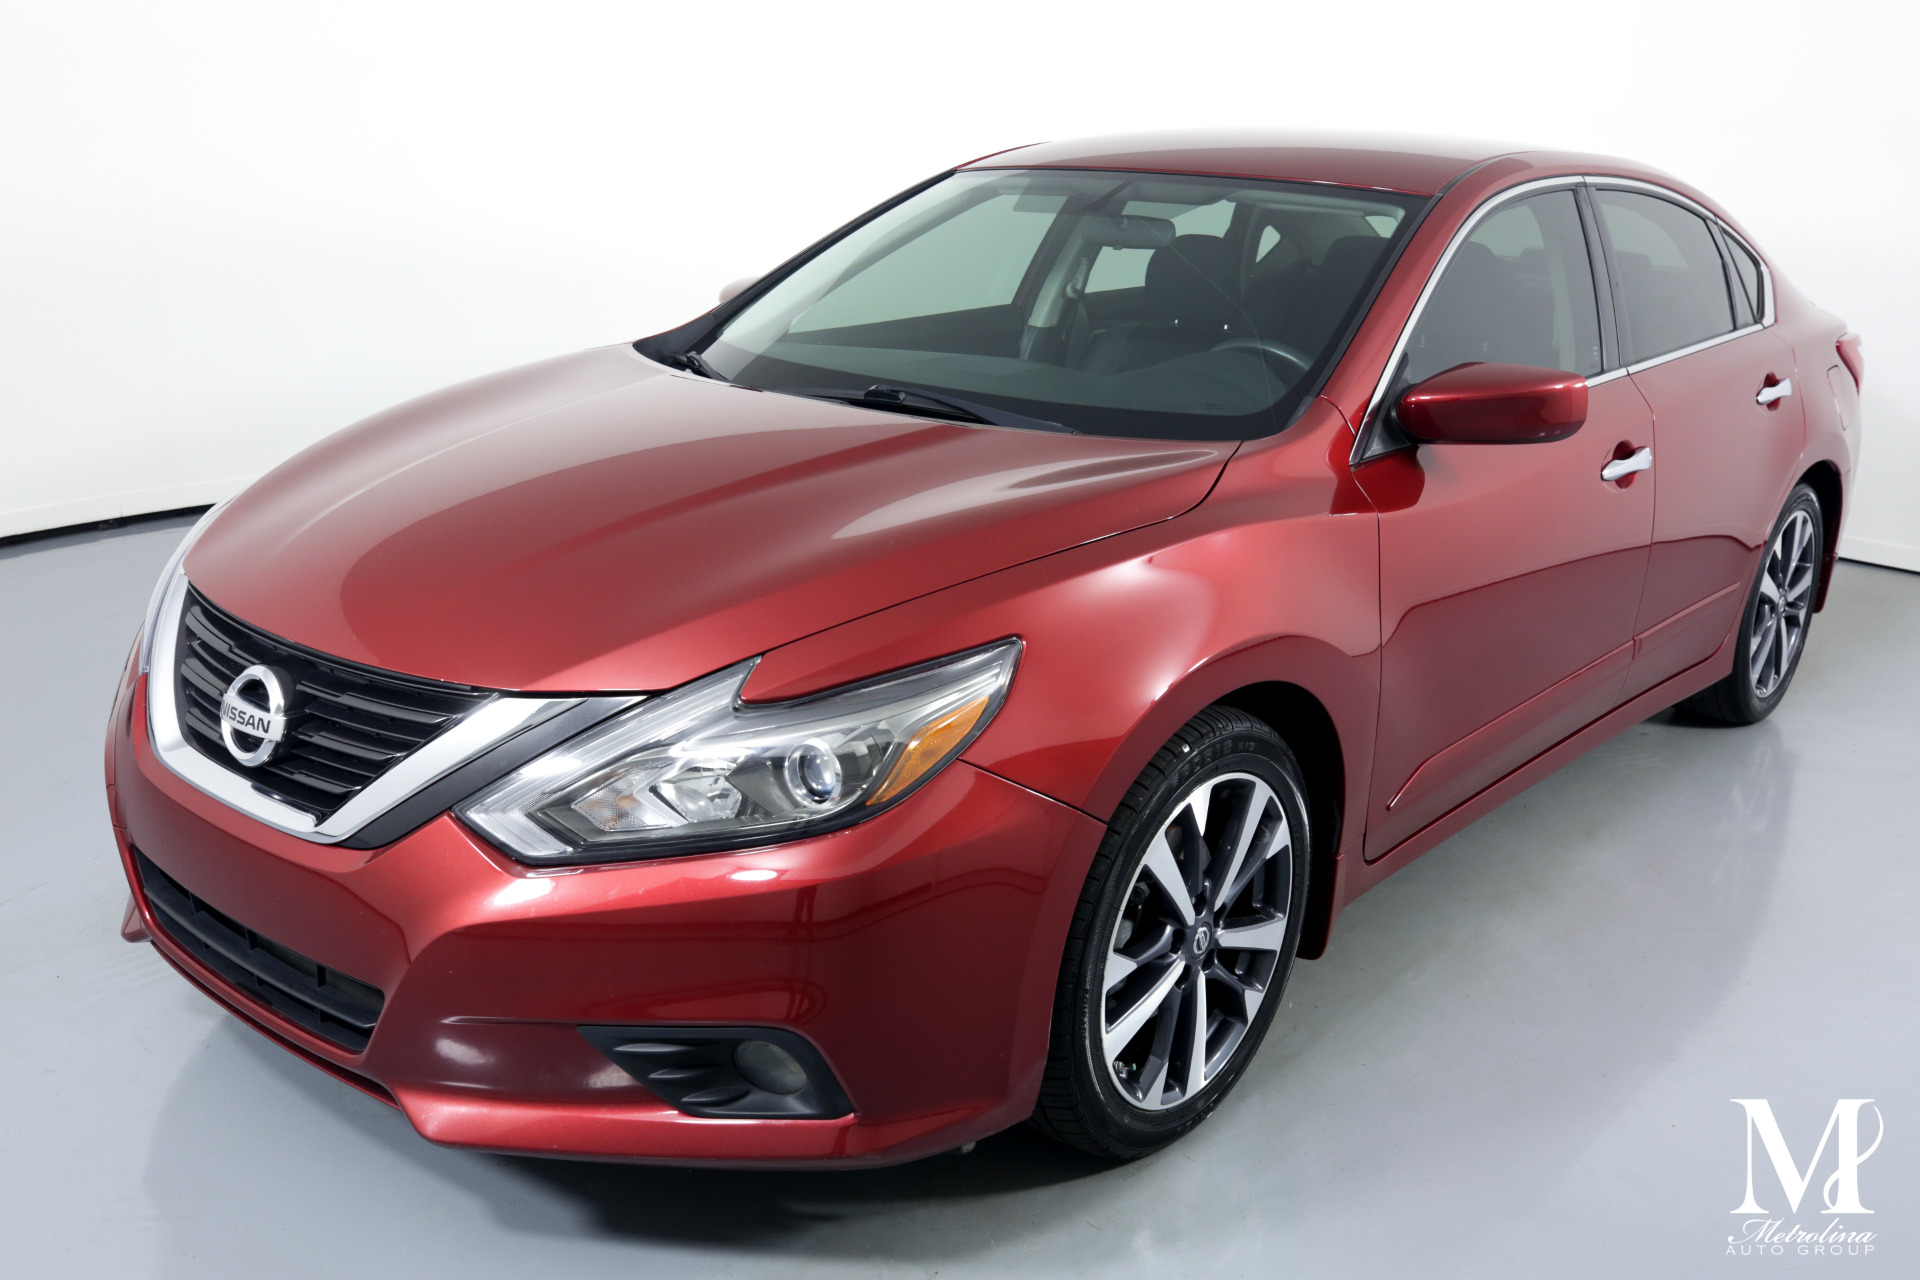 Used 2016 Nissan Altima 2.5 SR for sale $11,996 at Metrolina Auto Group in Charlotte NC 28217 - 4